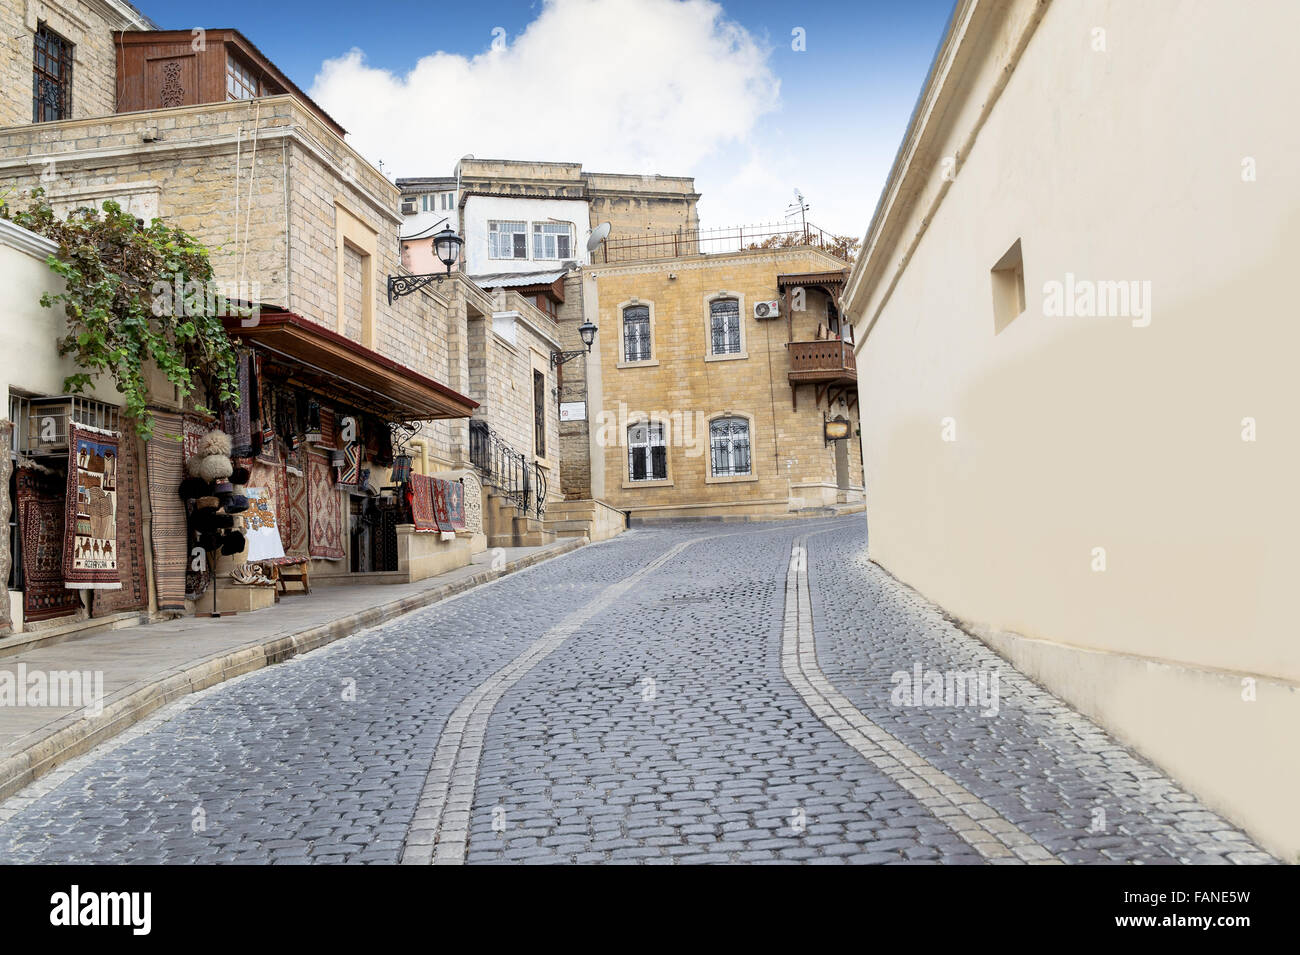 A Street view at old city in Baku, Azerbaijan. Inner City (Azerbaijani iceri sehir) is the historical core of Baku. - Stock Image